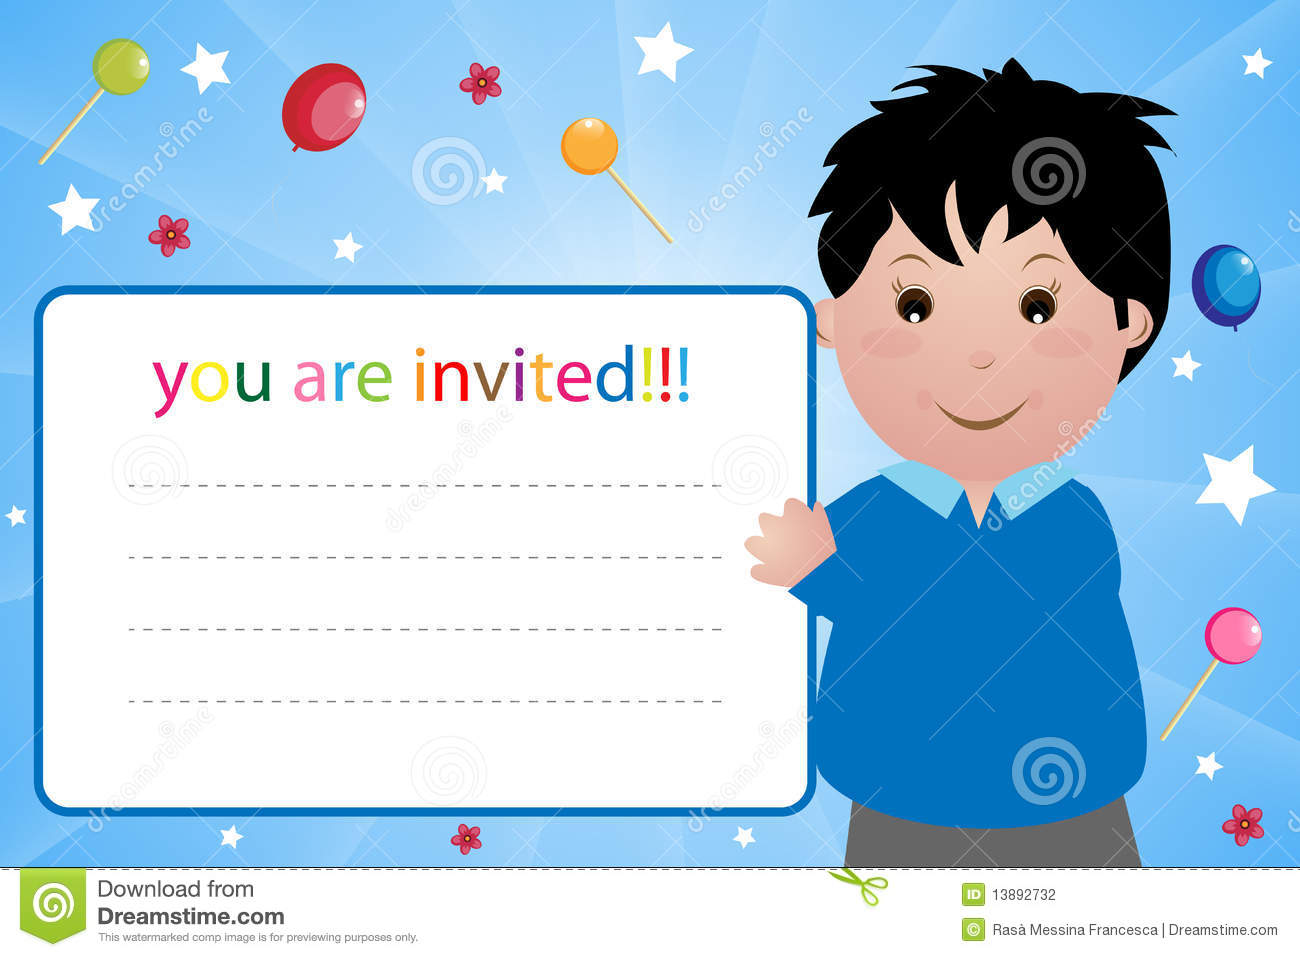 Party Invitation Card - Boy Stock Vector - Illustration of abstract ...